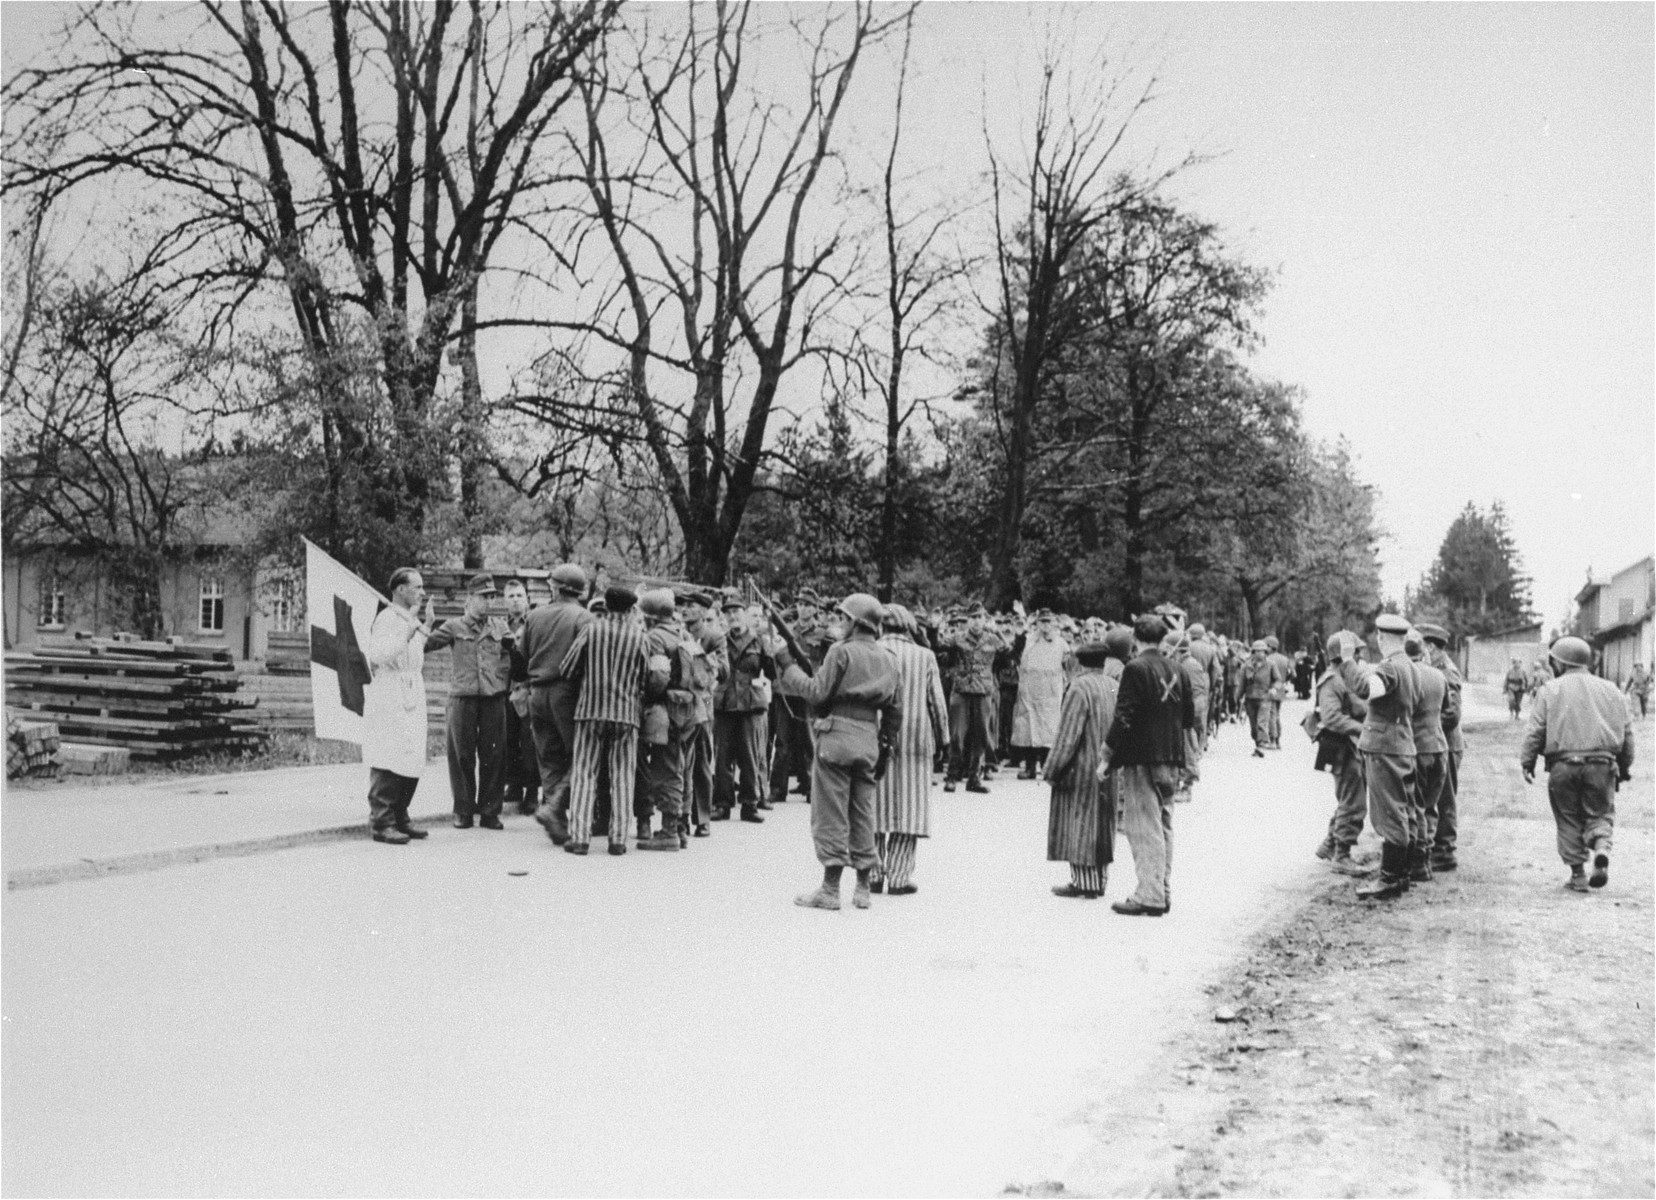 SS personnel in Dachau surrender to troops of the 45th U.S. Infantry Division.